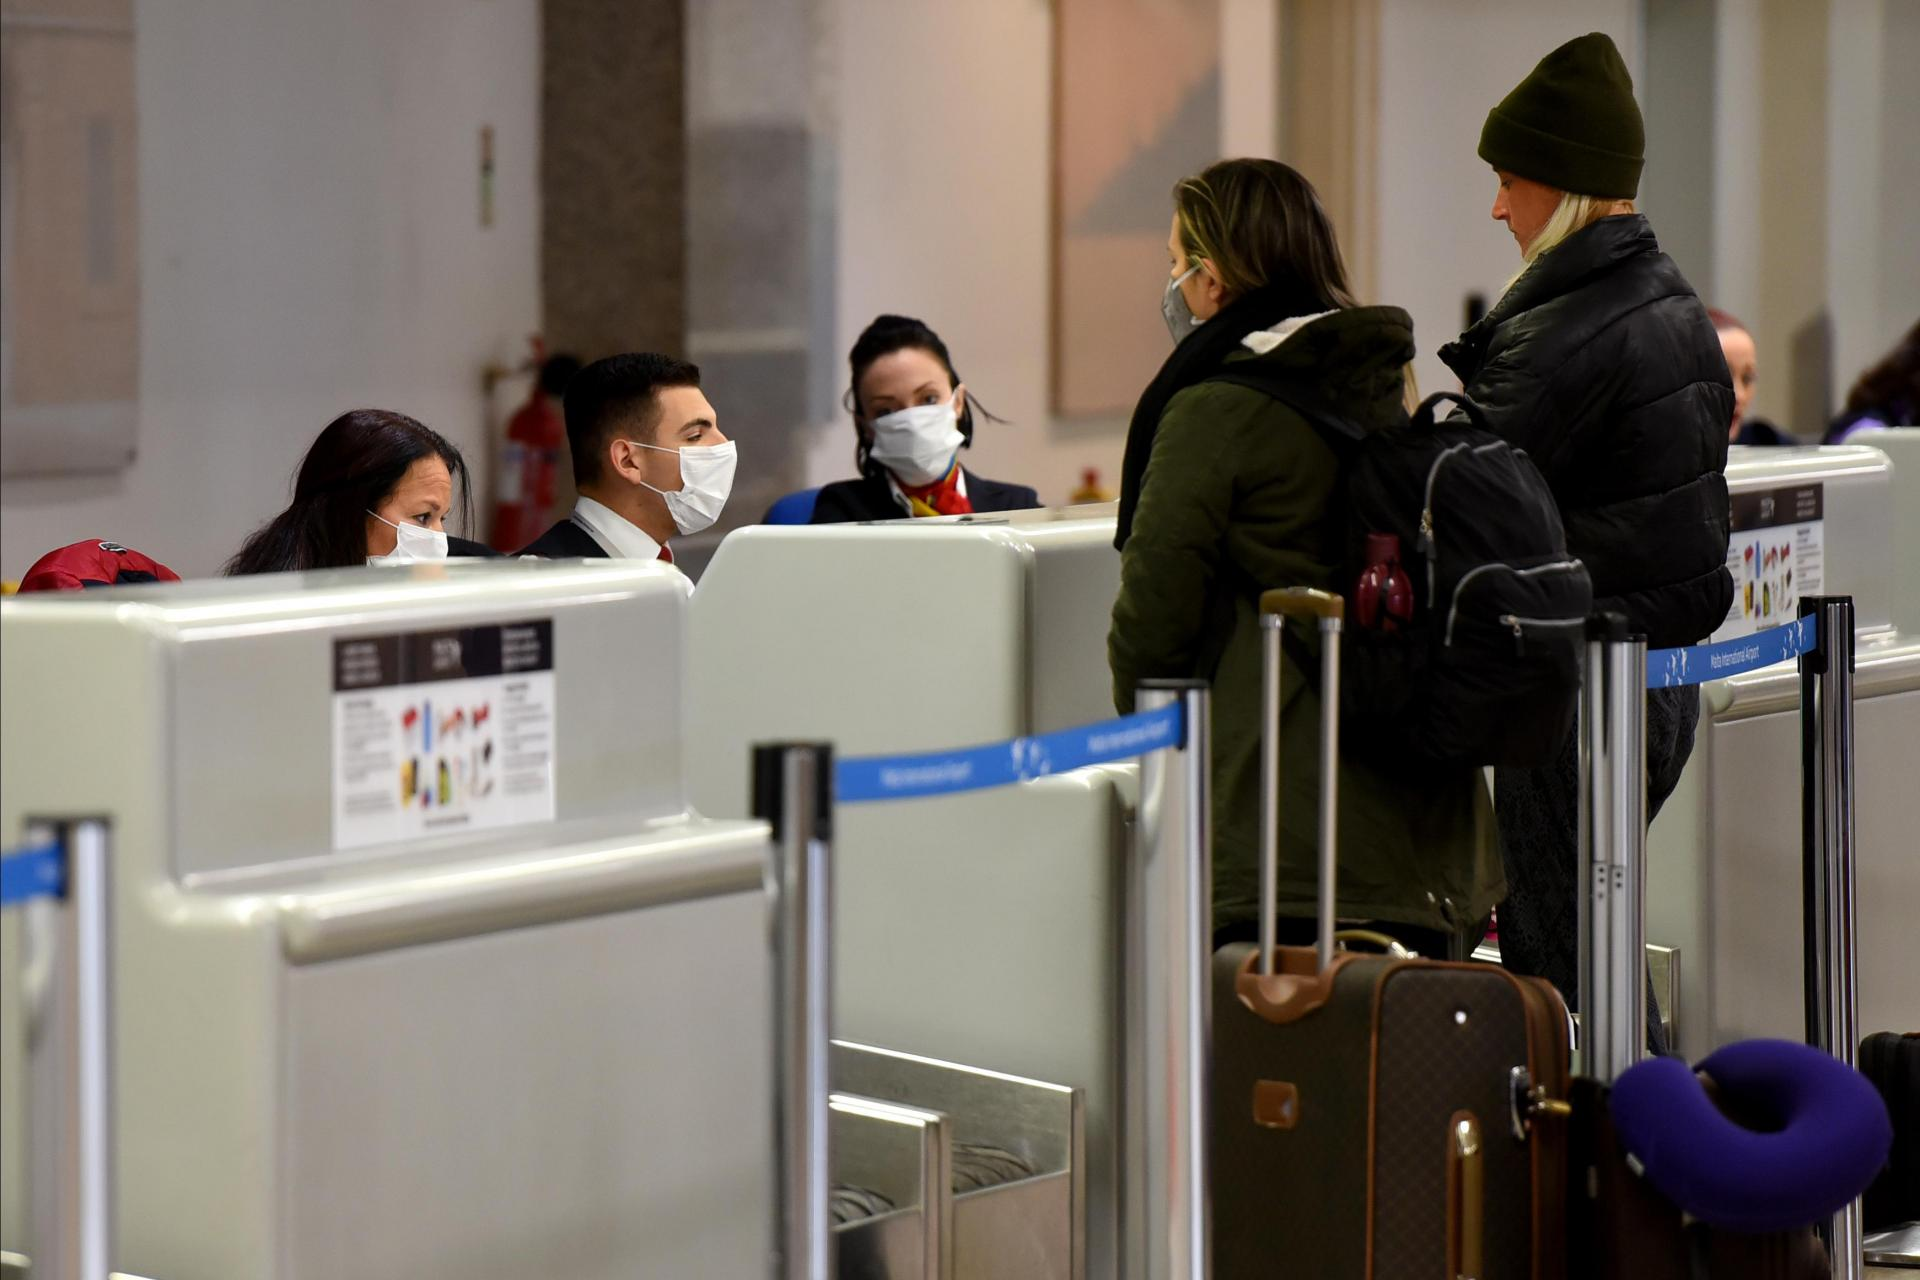 Sometimes authorities have to check passengers on a flight, if one of them subsequently tests positive for coronavirus. Photo: Chris Sant Fournier